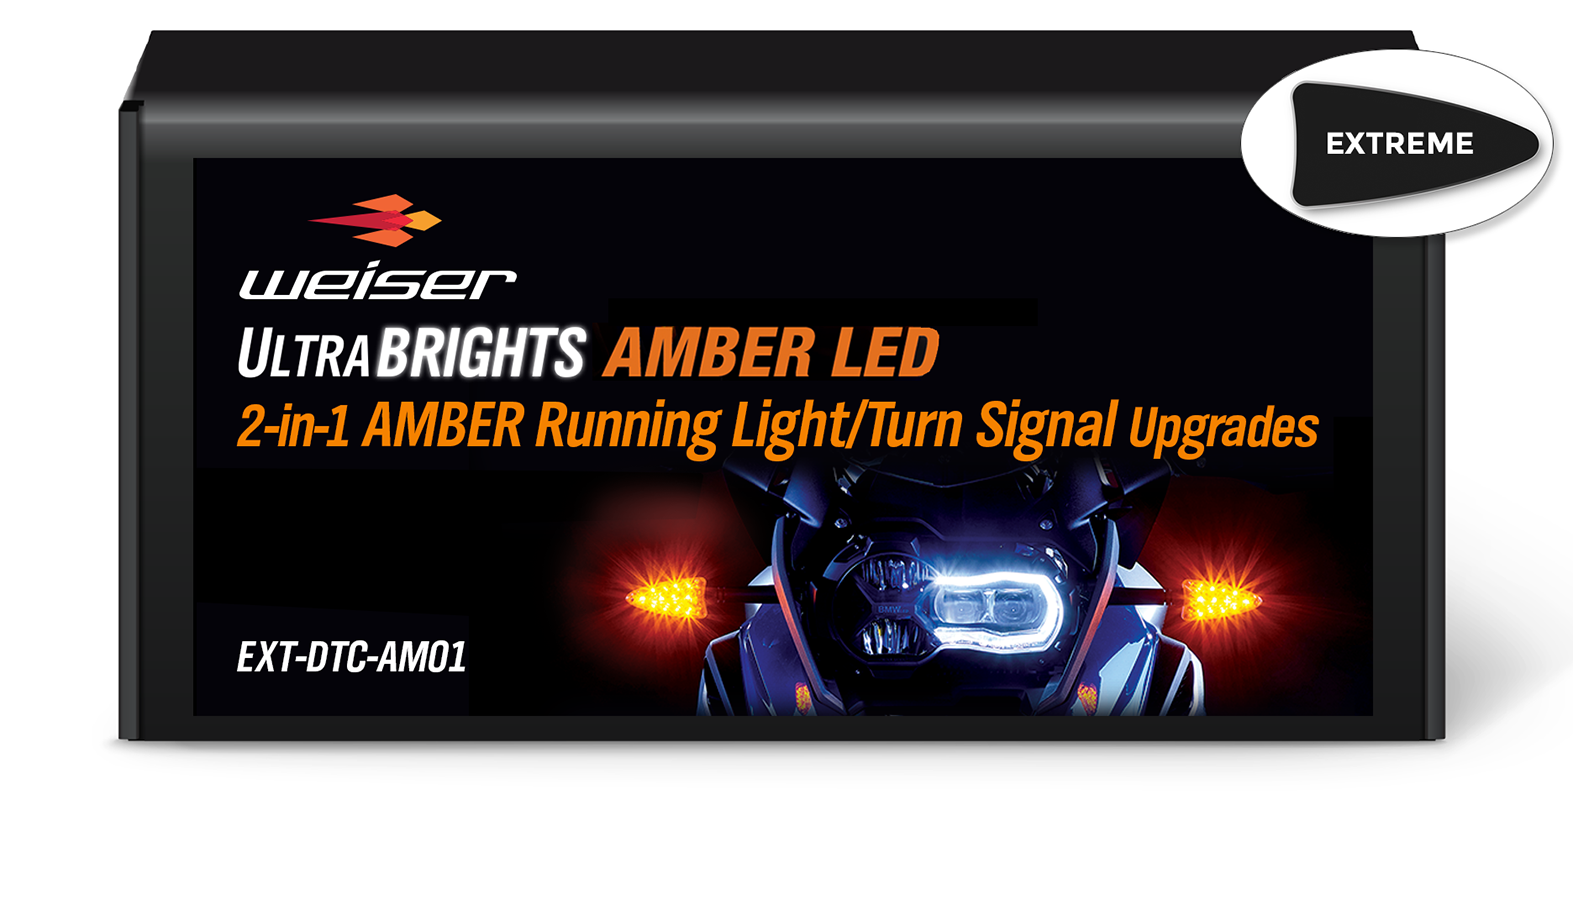 Extreme 2-in-1 LED AMBER Running Light/AMBER Turn Signal Upgrades EXT-DTC-AM01